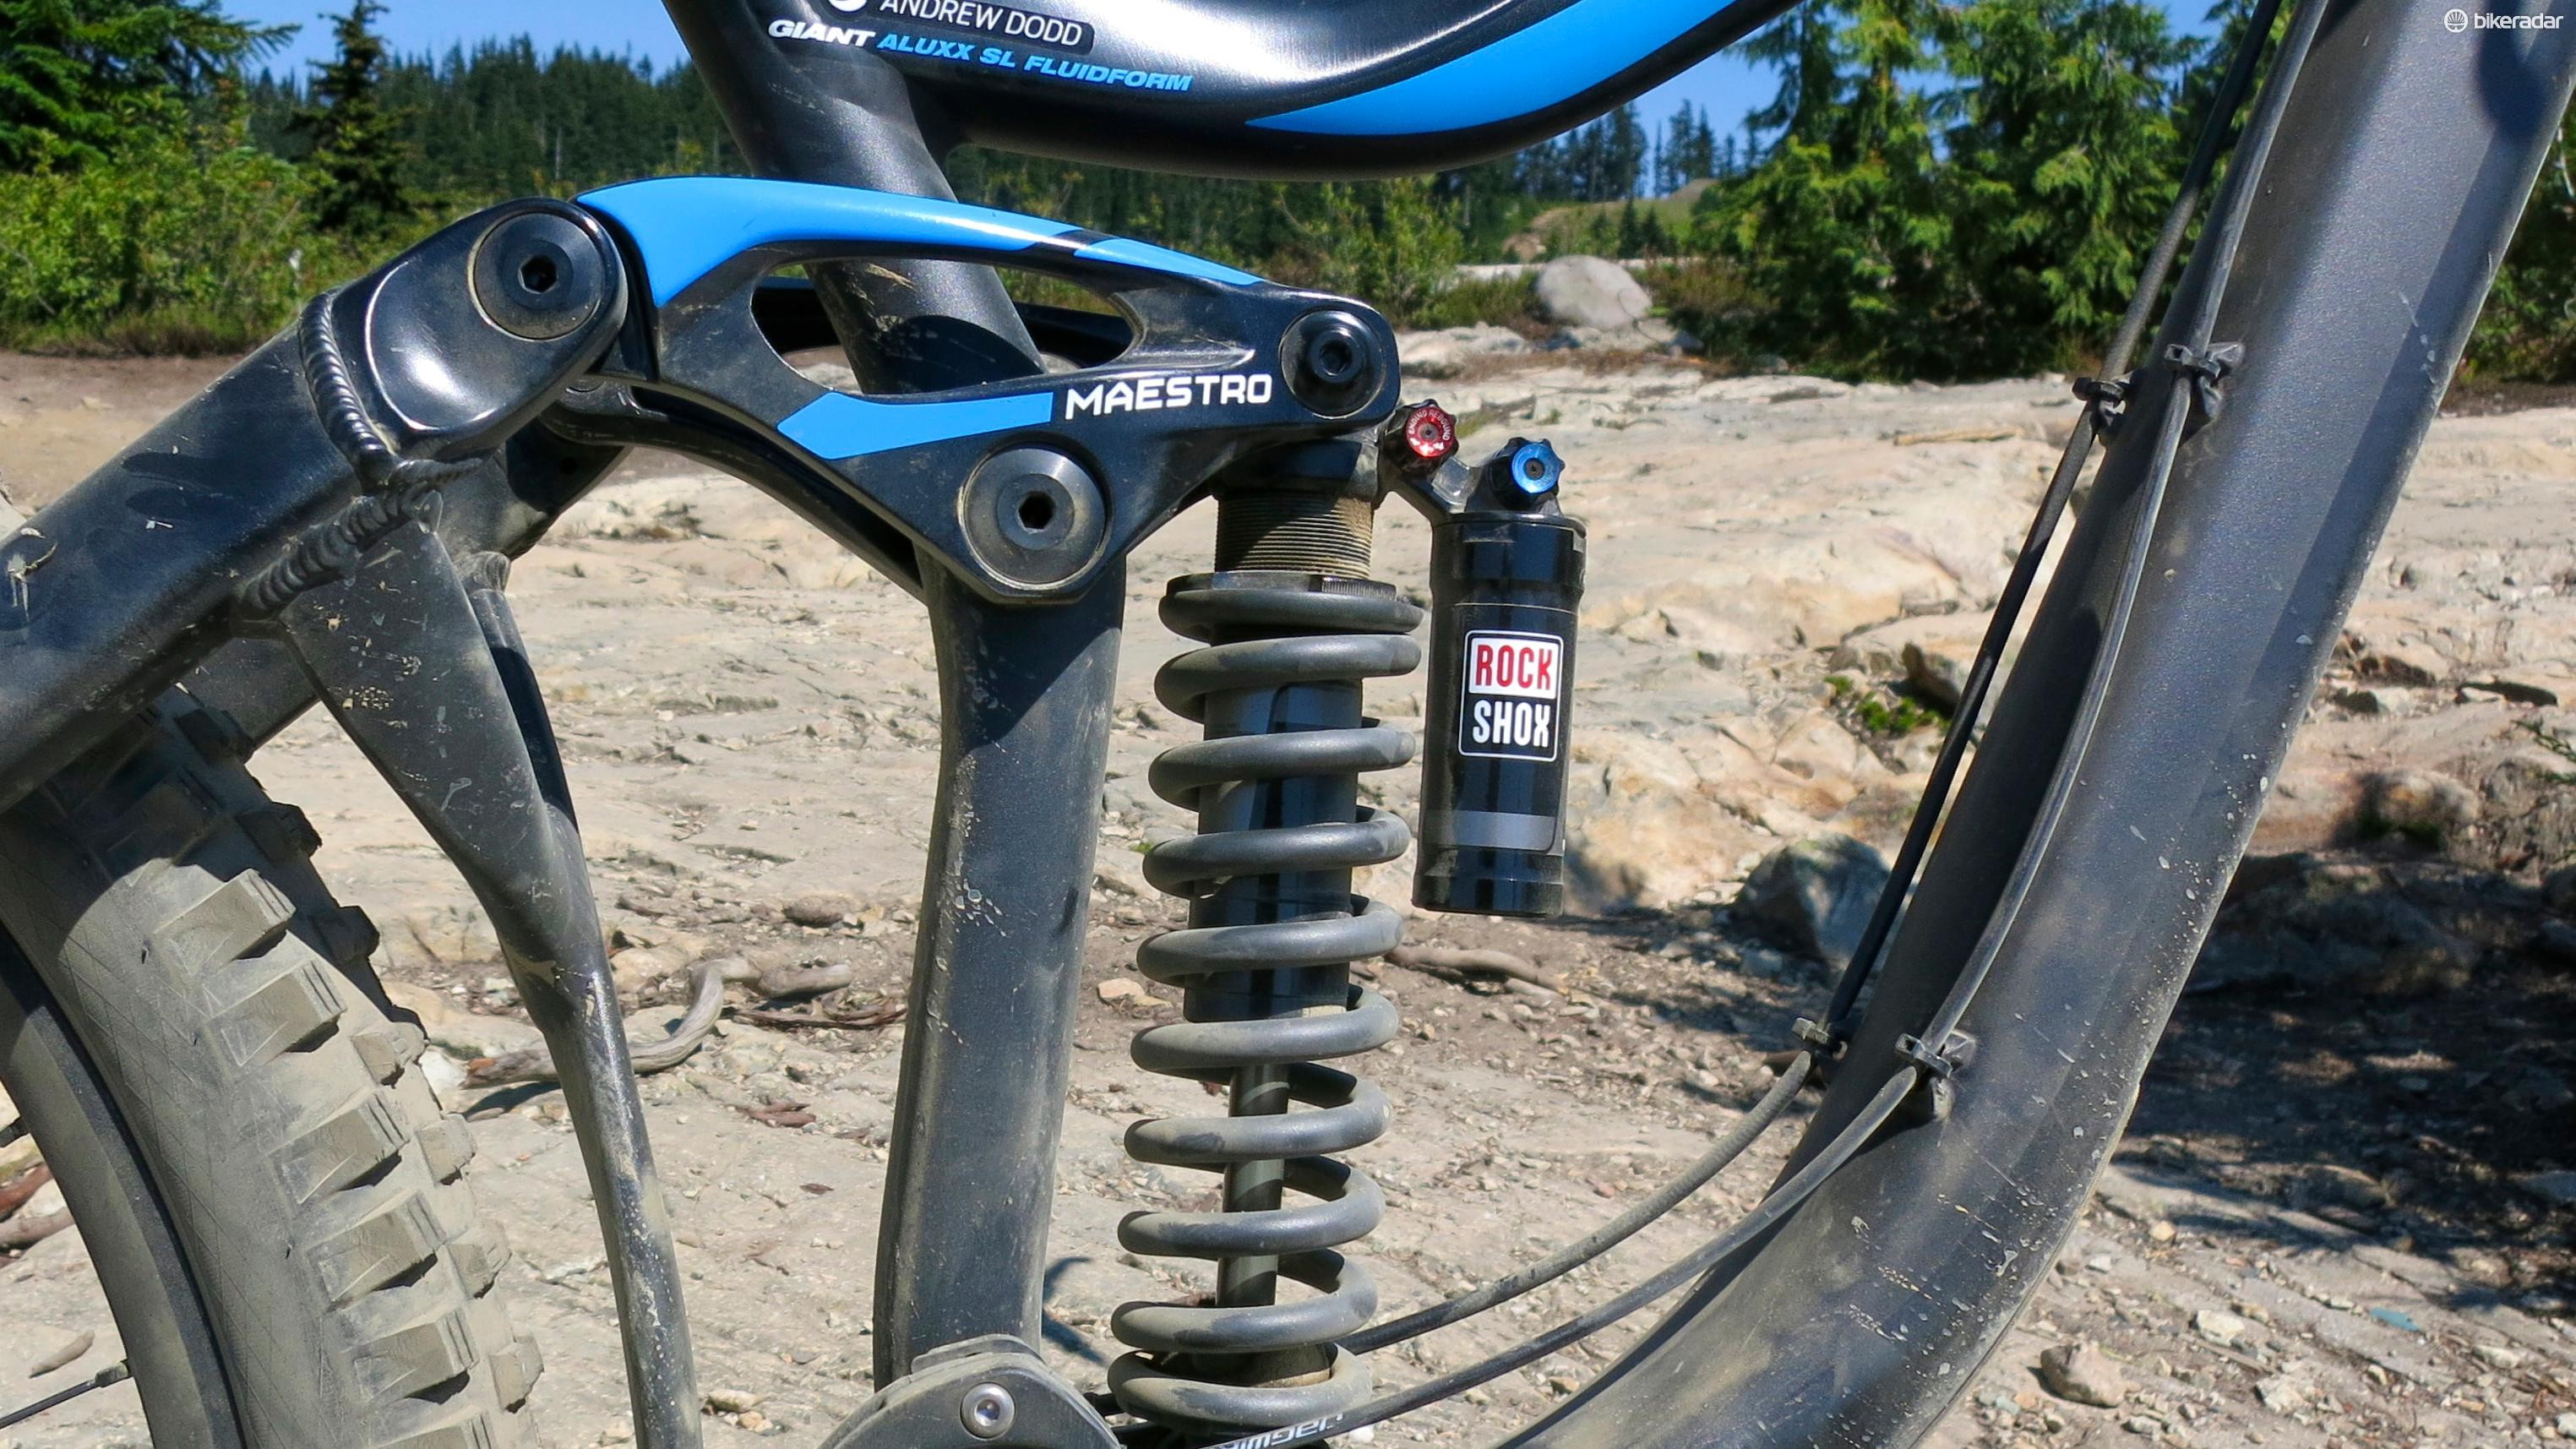 Giant has now used a longer eye-to-eye shock and has a bearing in the upper shock mount